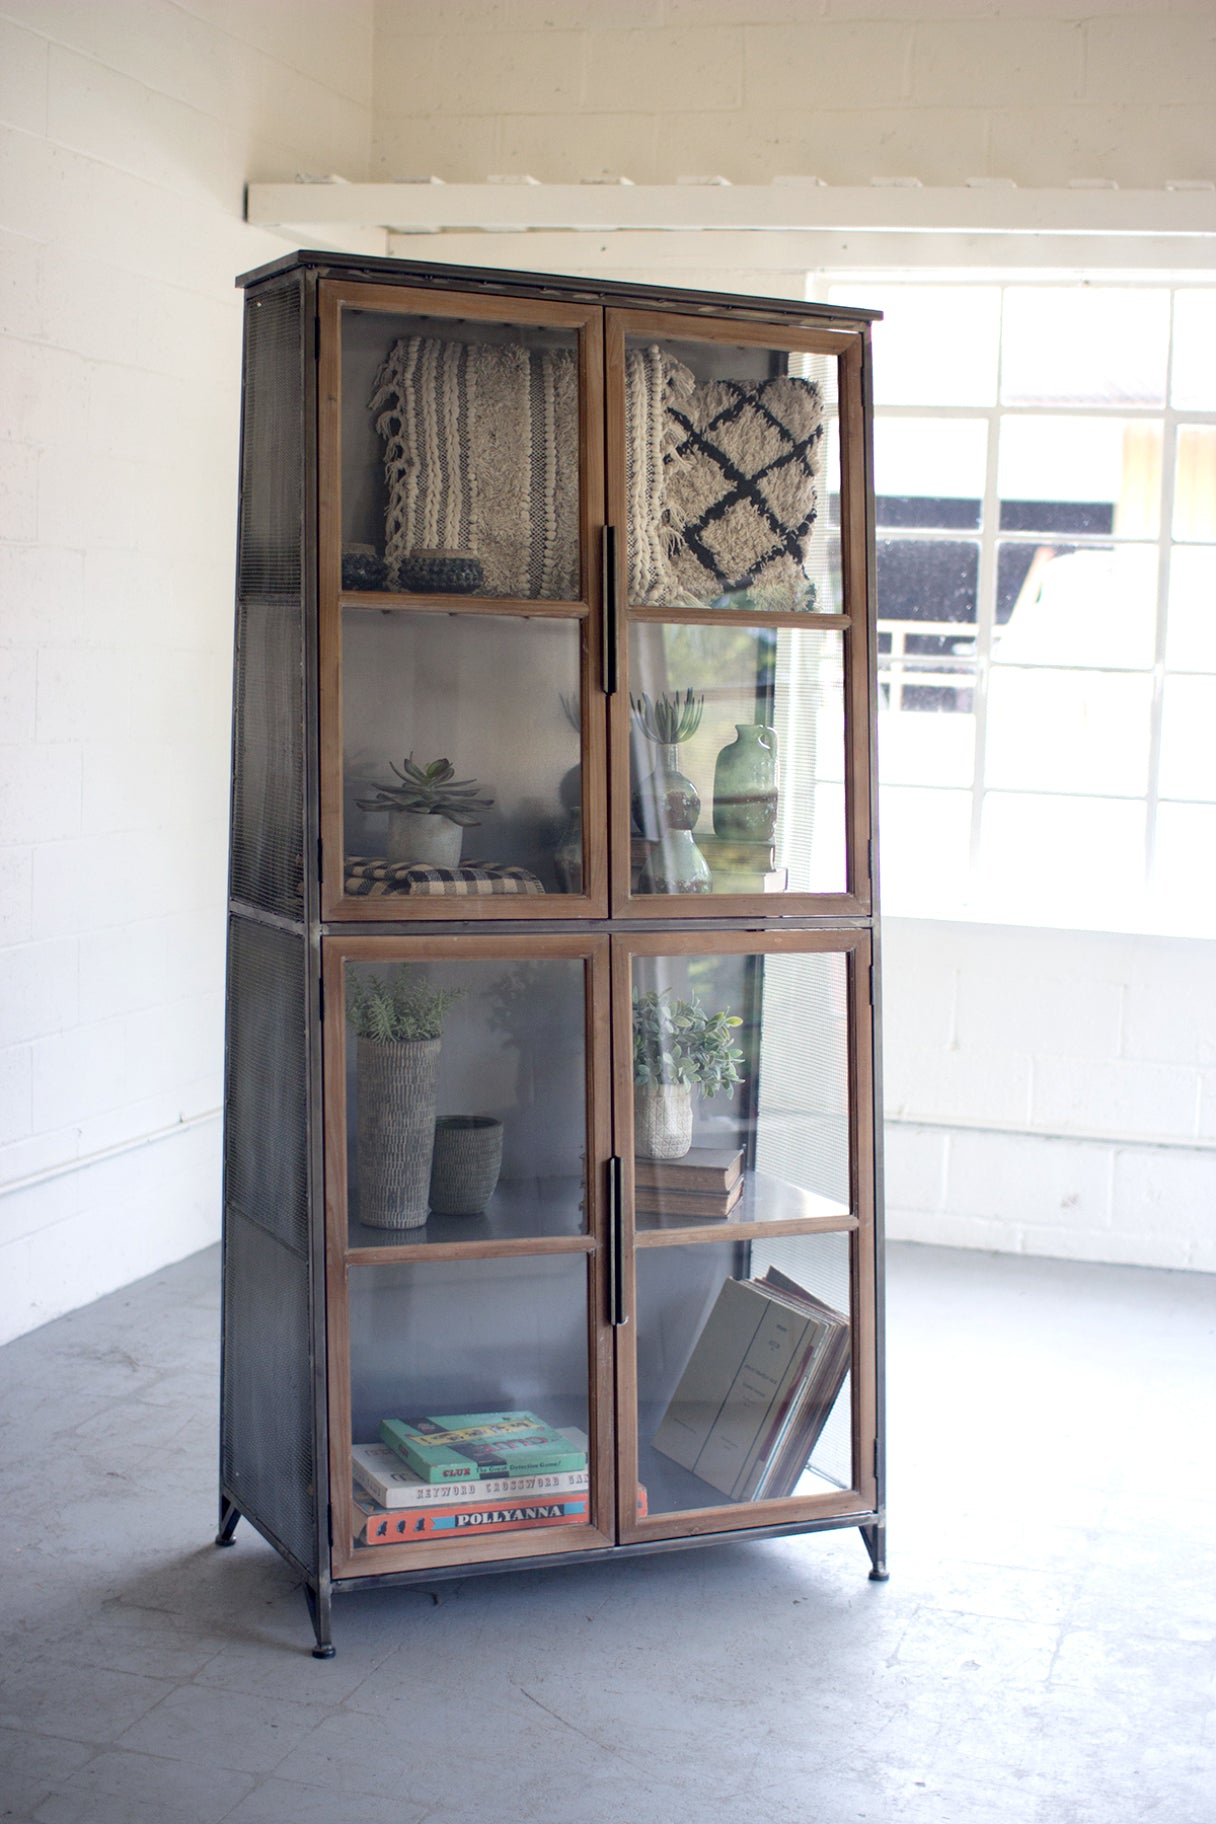 Industrial Modern Glass Door Storage Cabinet Bookcase : door storage cabinet  - Aquiesqueretaro.Com